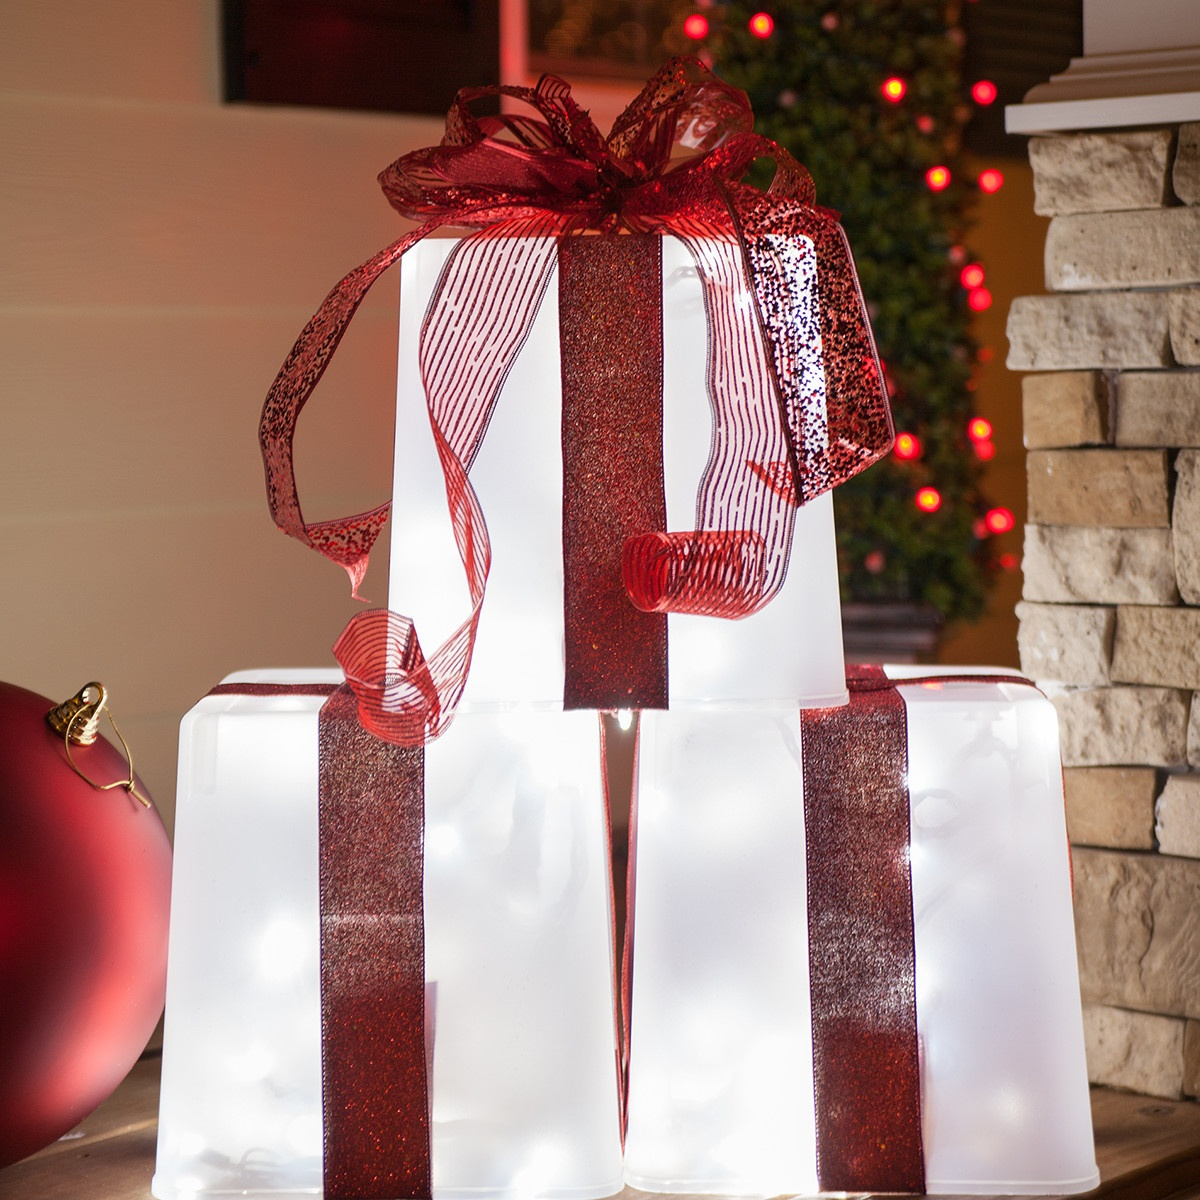 Lighted christmas gift boxes yard decor - Create Diy Lighted Gift Boxes Using Plastic Containers String Lights And Christmas Ribbon